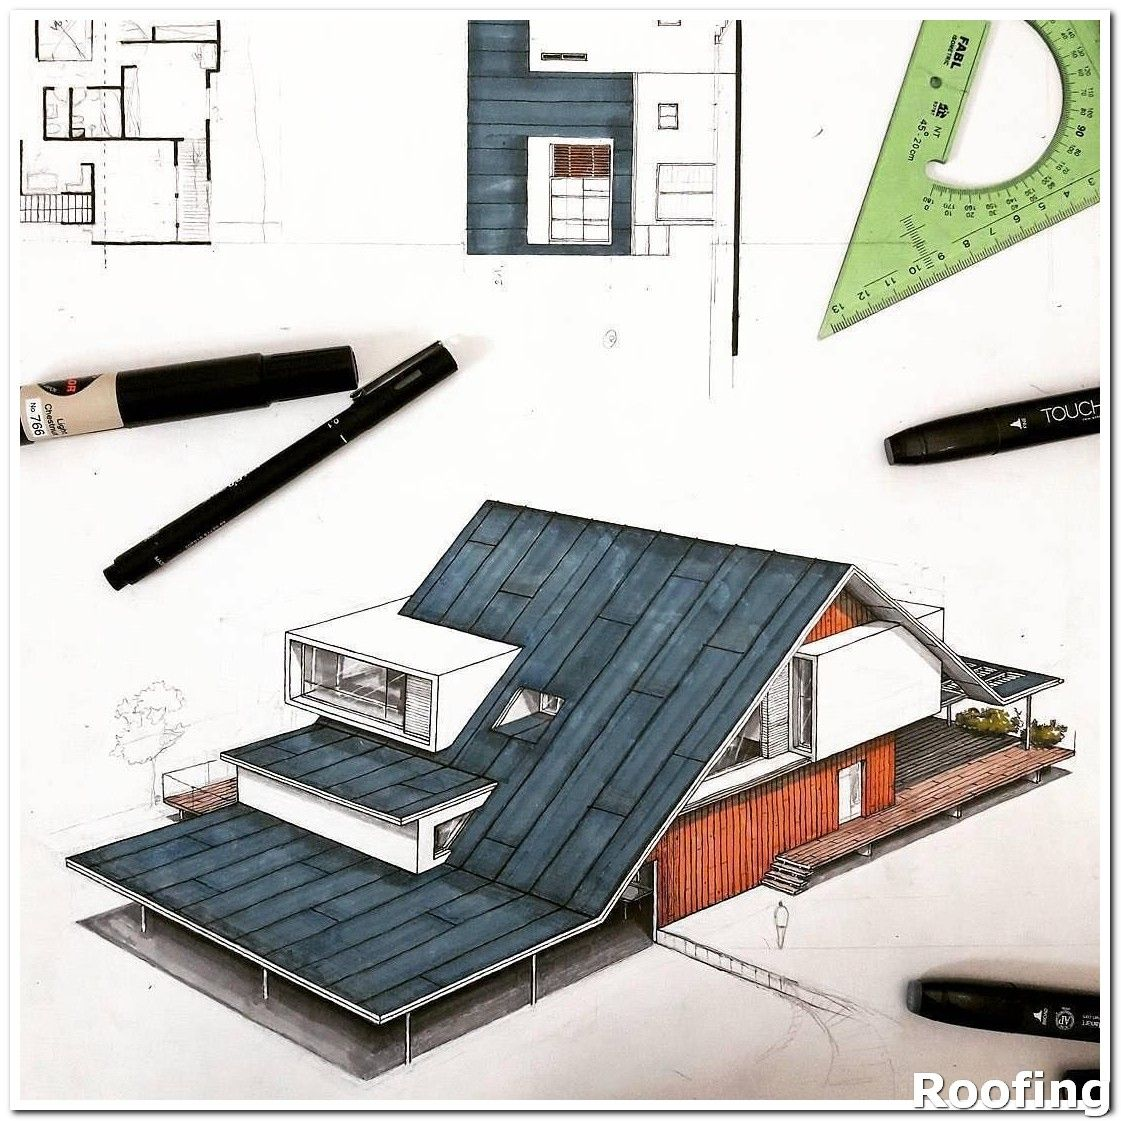 Helpful Roofing Tips For Maintaining The Integrity Of Your Roof In 2020 Roof Design Architecture Concept Drawings Architecture Drawing